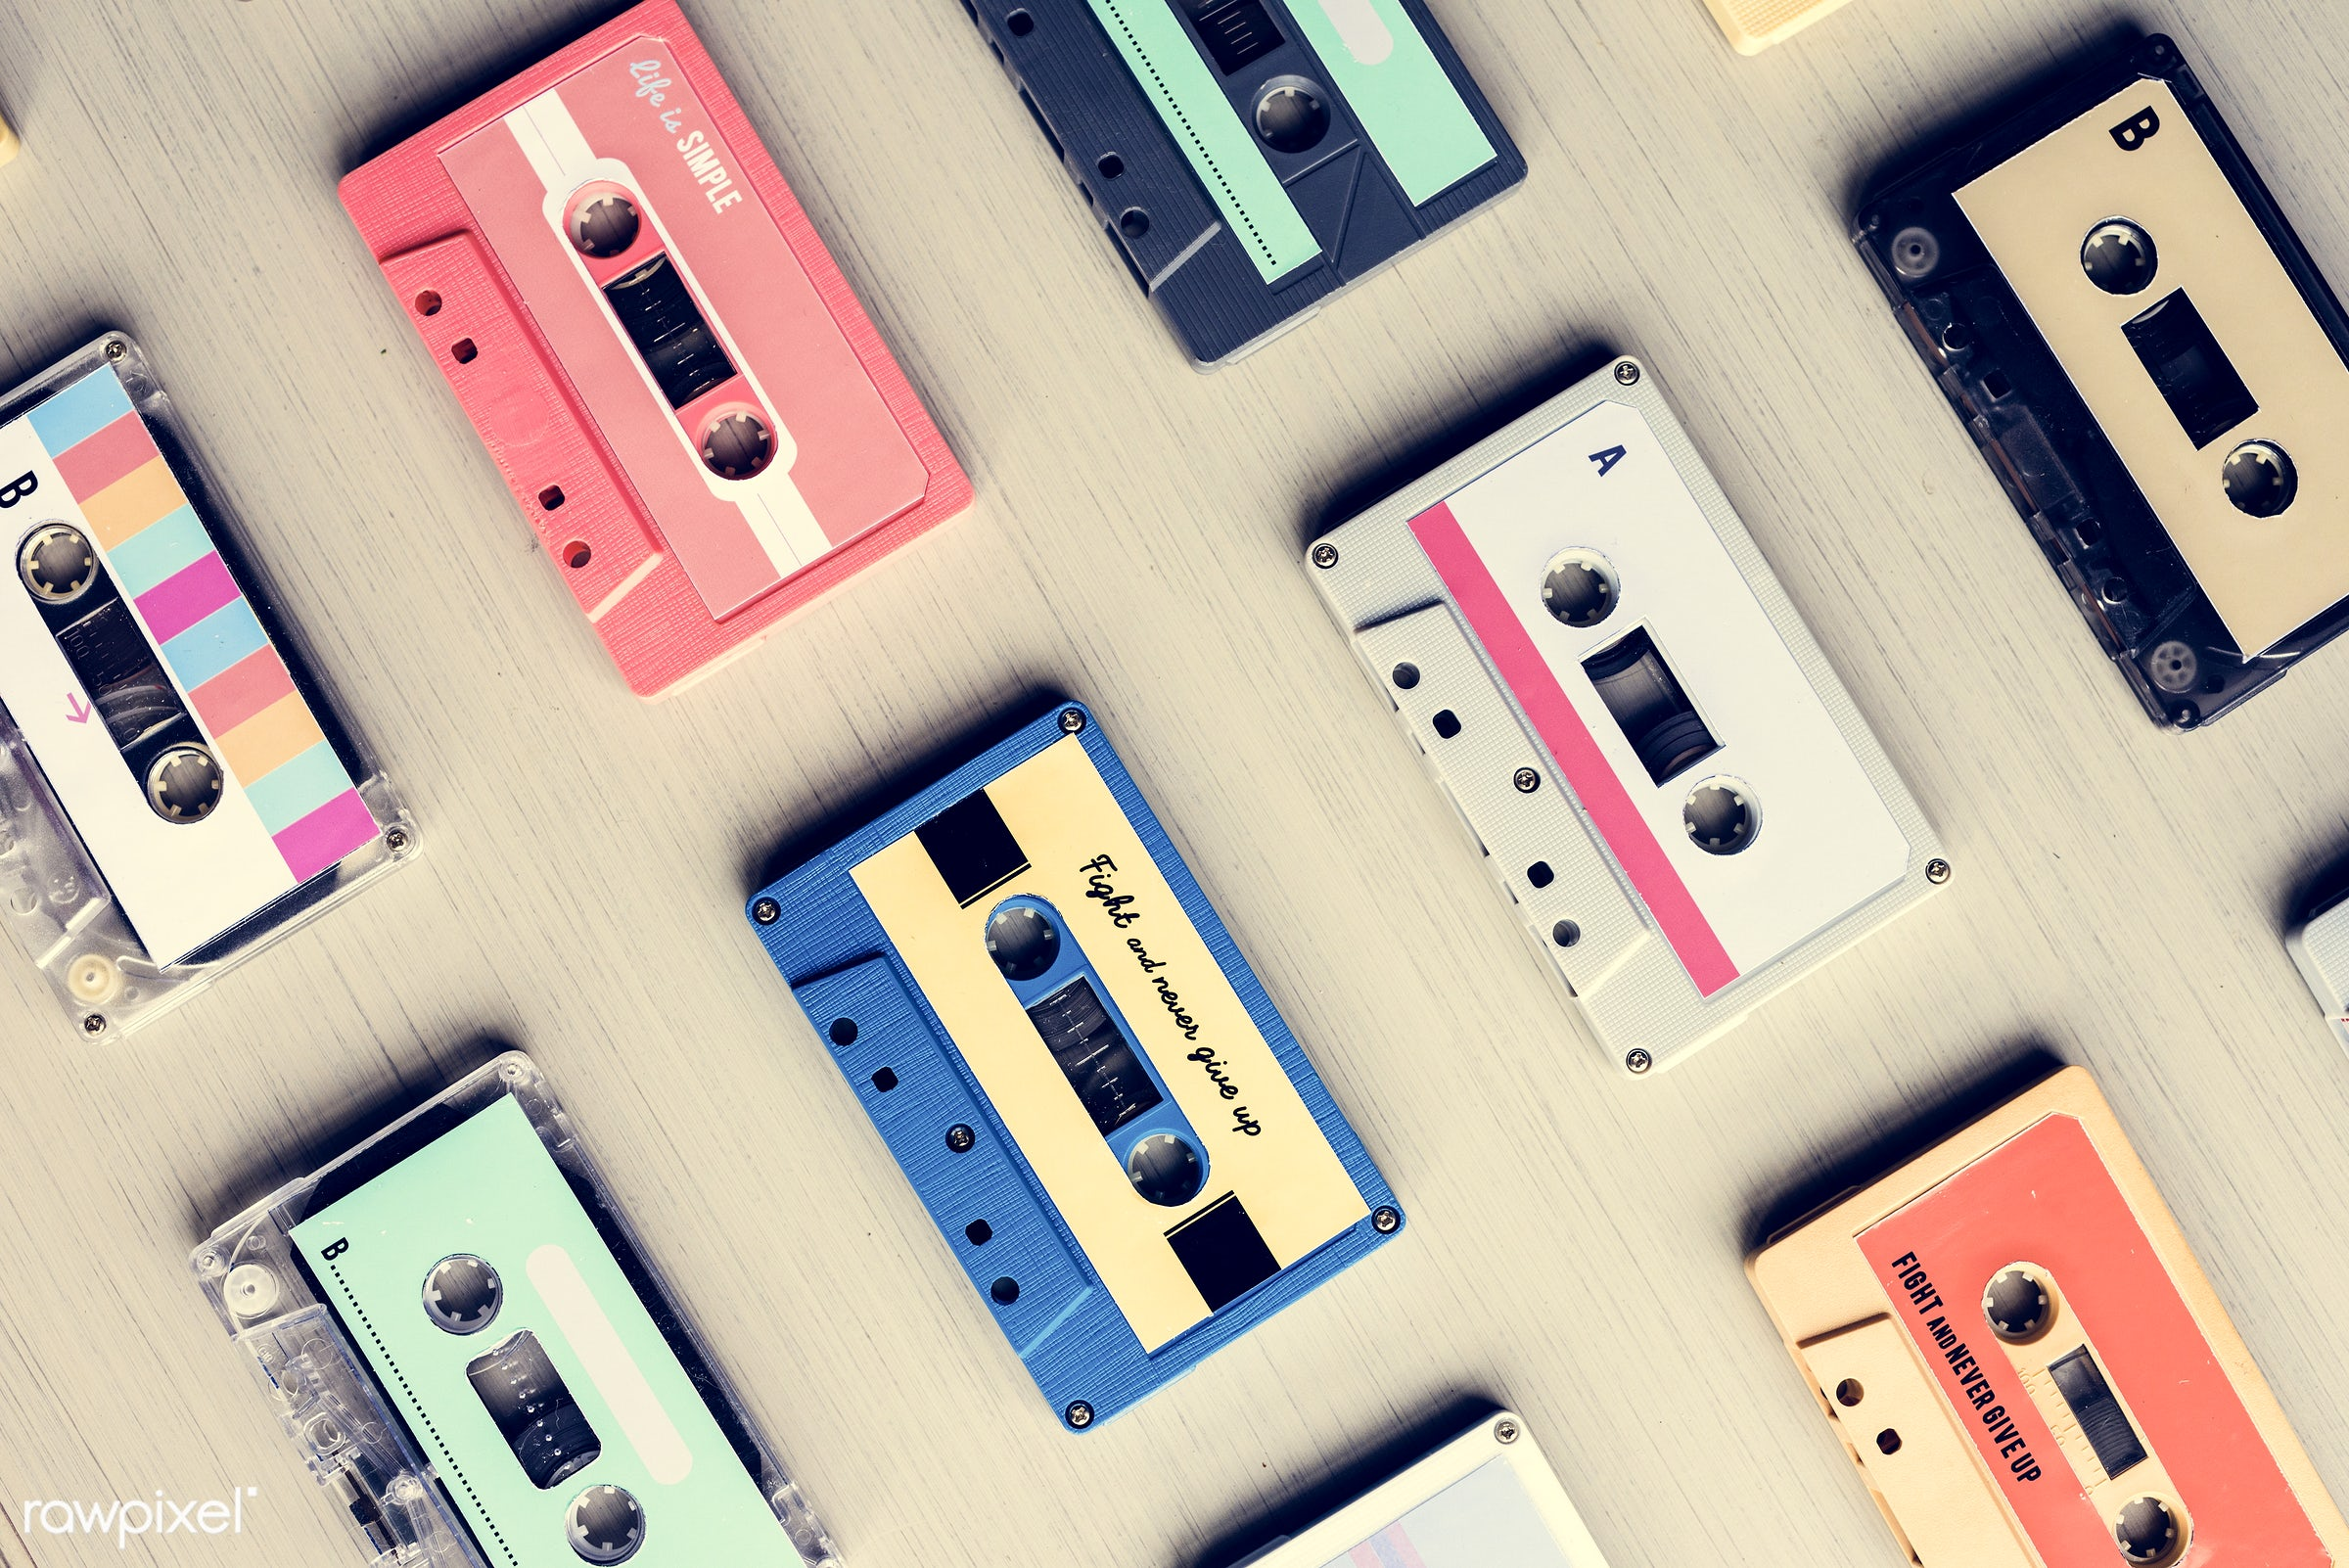 cassette, 80s, active, activity, attach, attached, audio, collection, enjoyment, entertainment, equipment, feelings, feels,...